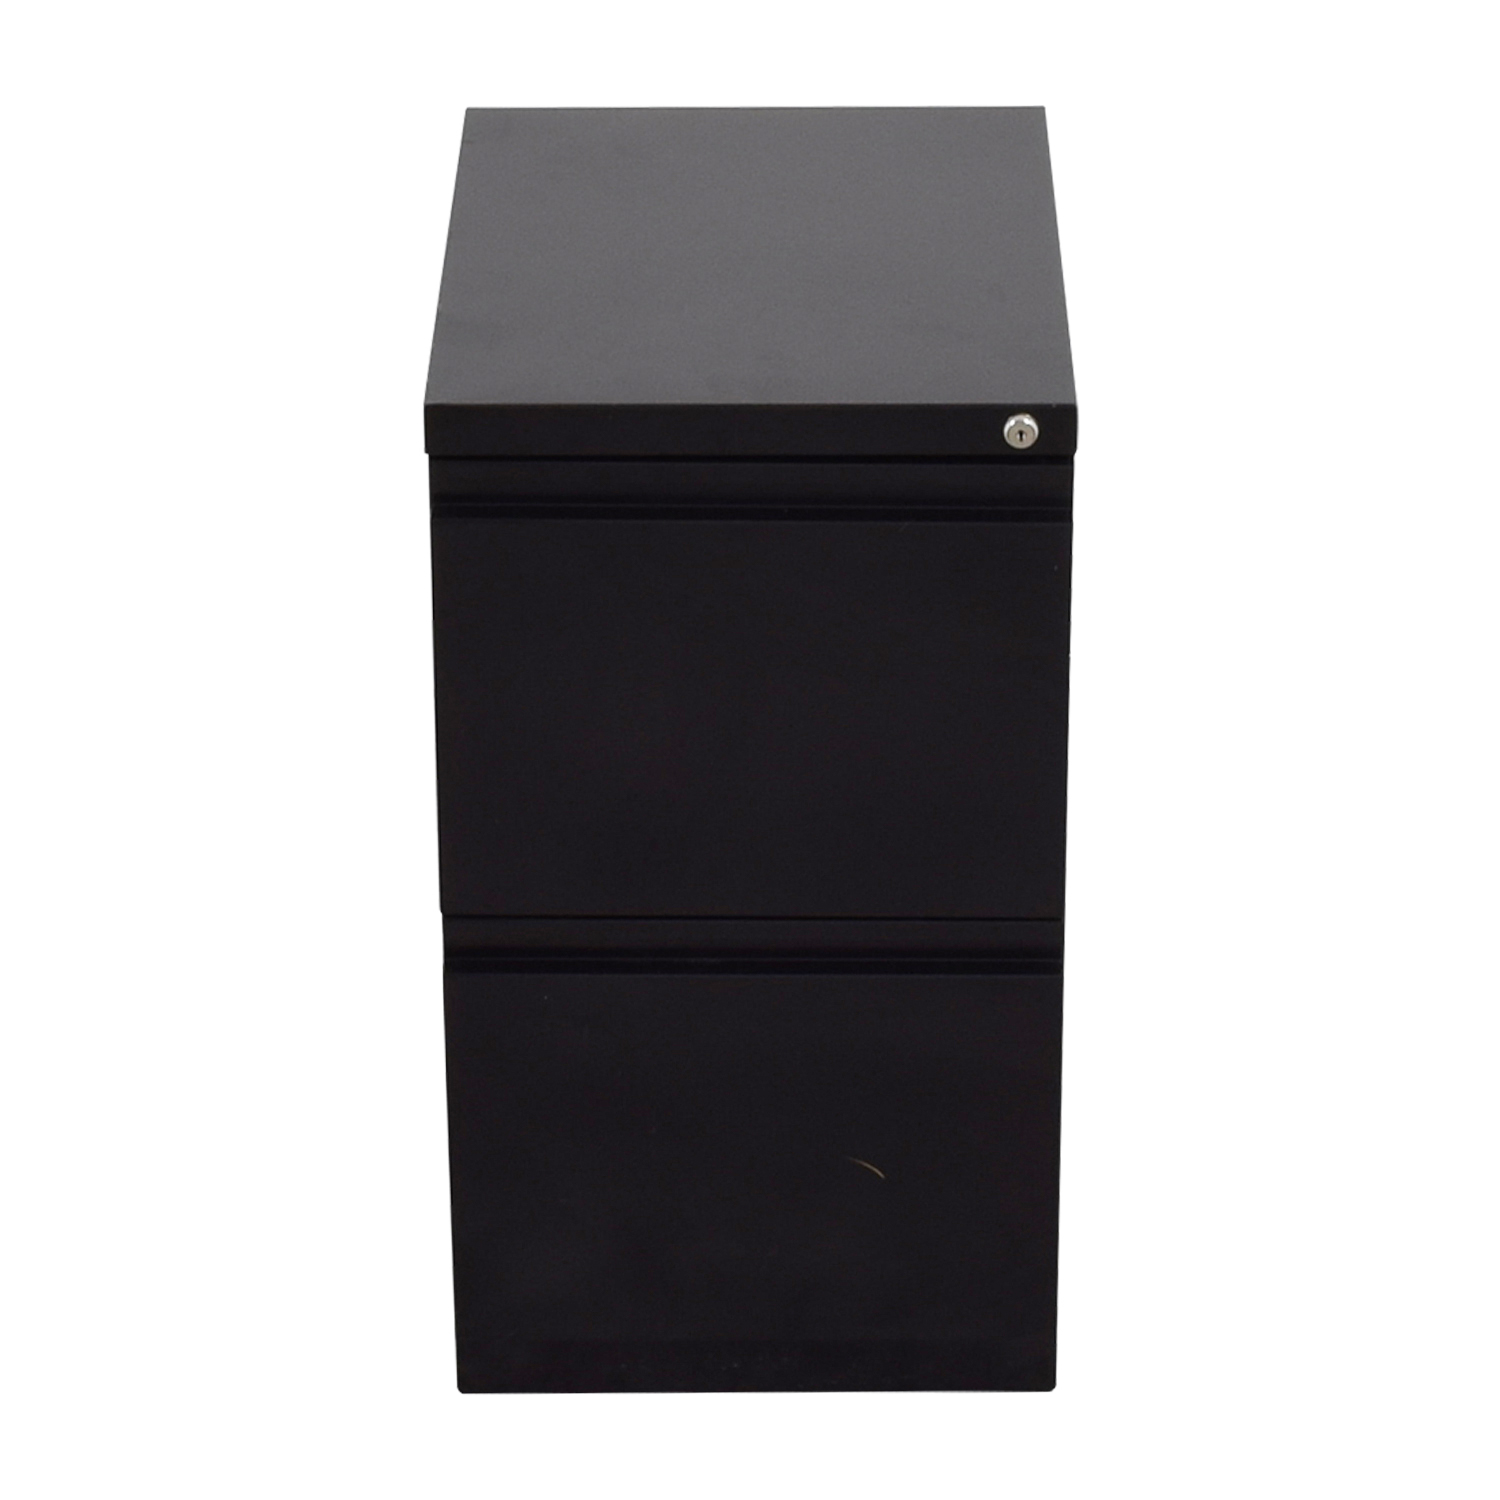 Staples 2-Drawer Mobile Pedestal File Cabinet / Storage